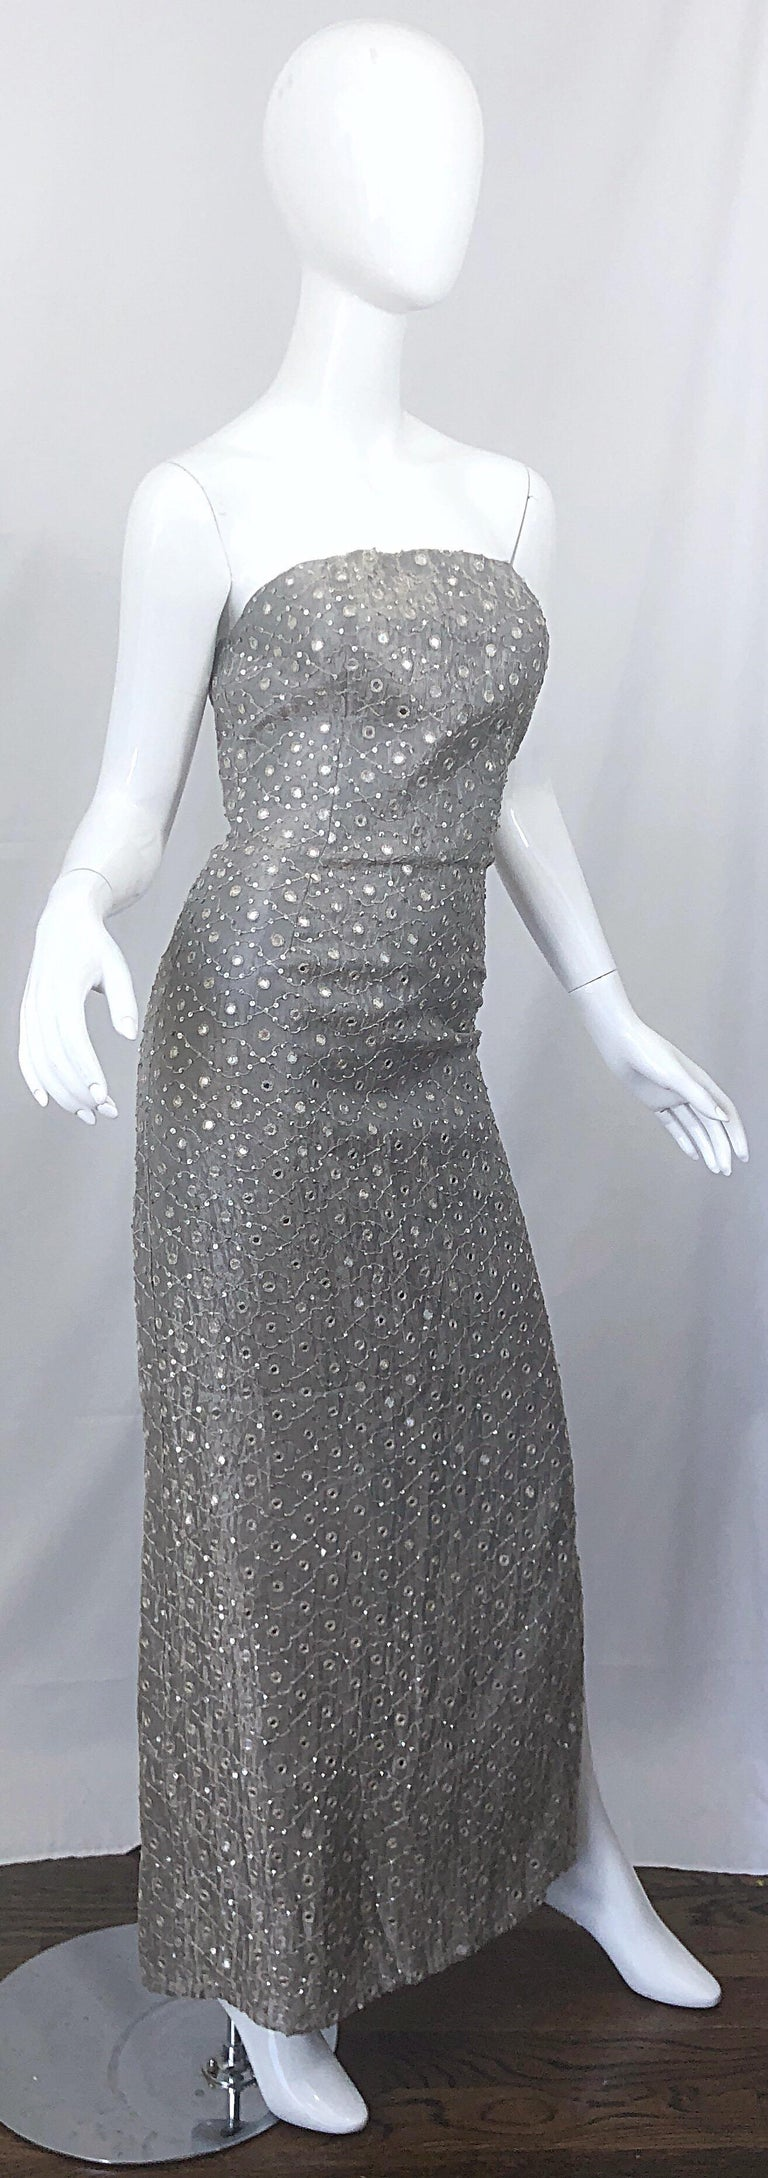 1990s Silver Grey Mirrored Sequins Size 6 Strapless Silk Vintage Gown Dress For Sale 2